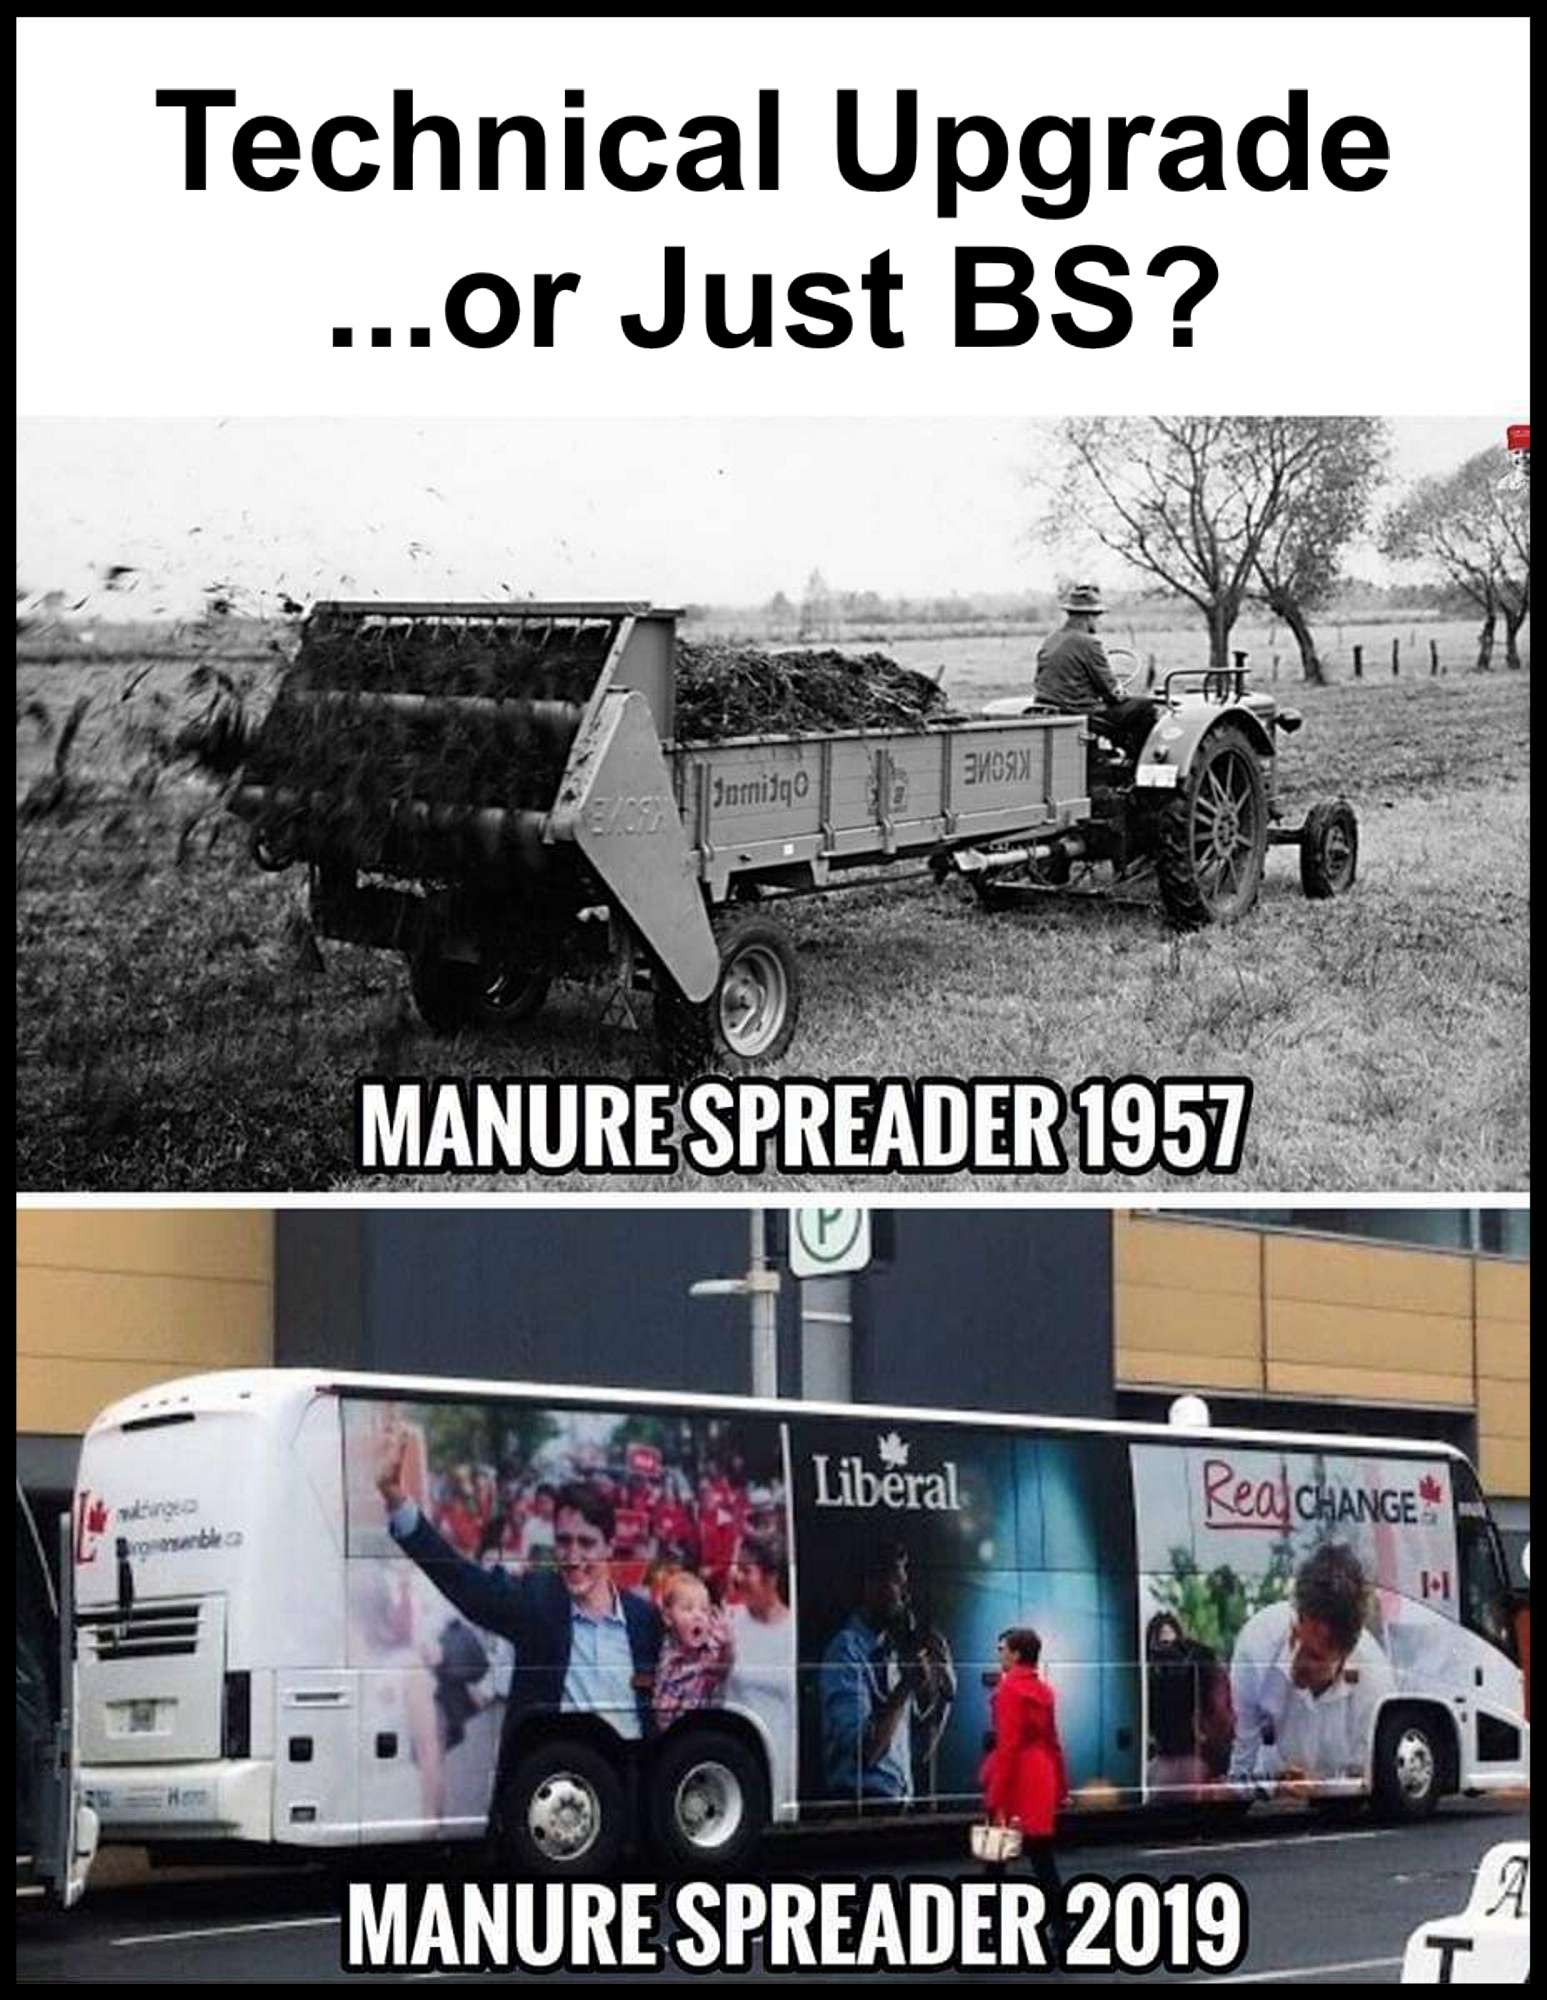 The Liberal Party spreads manure and BS